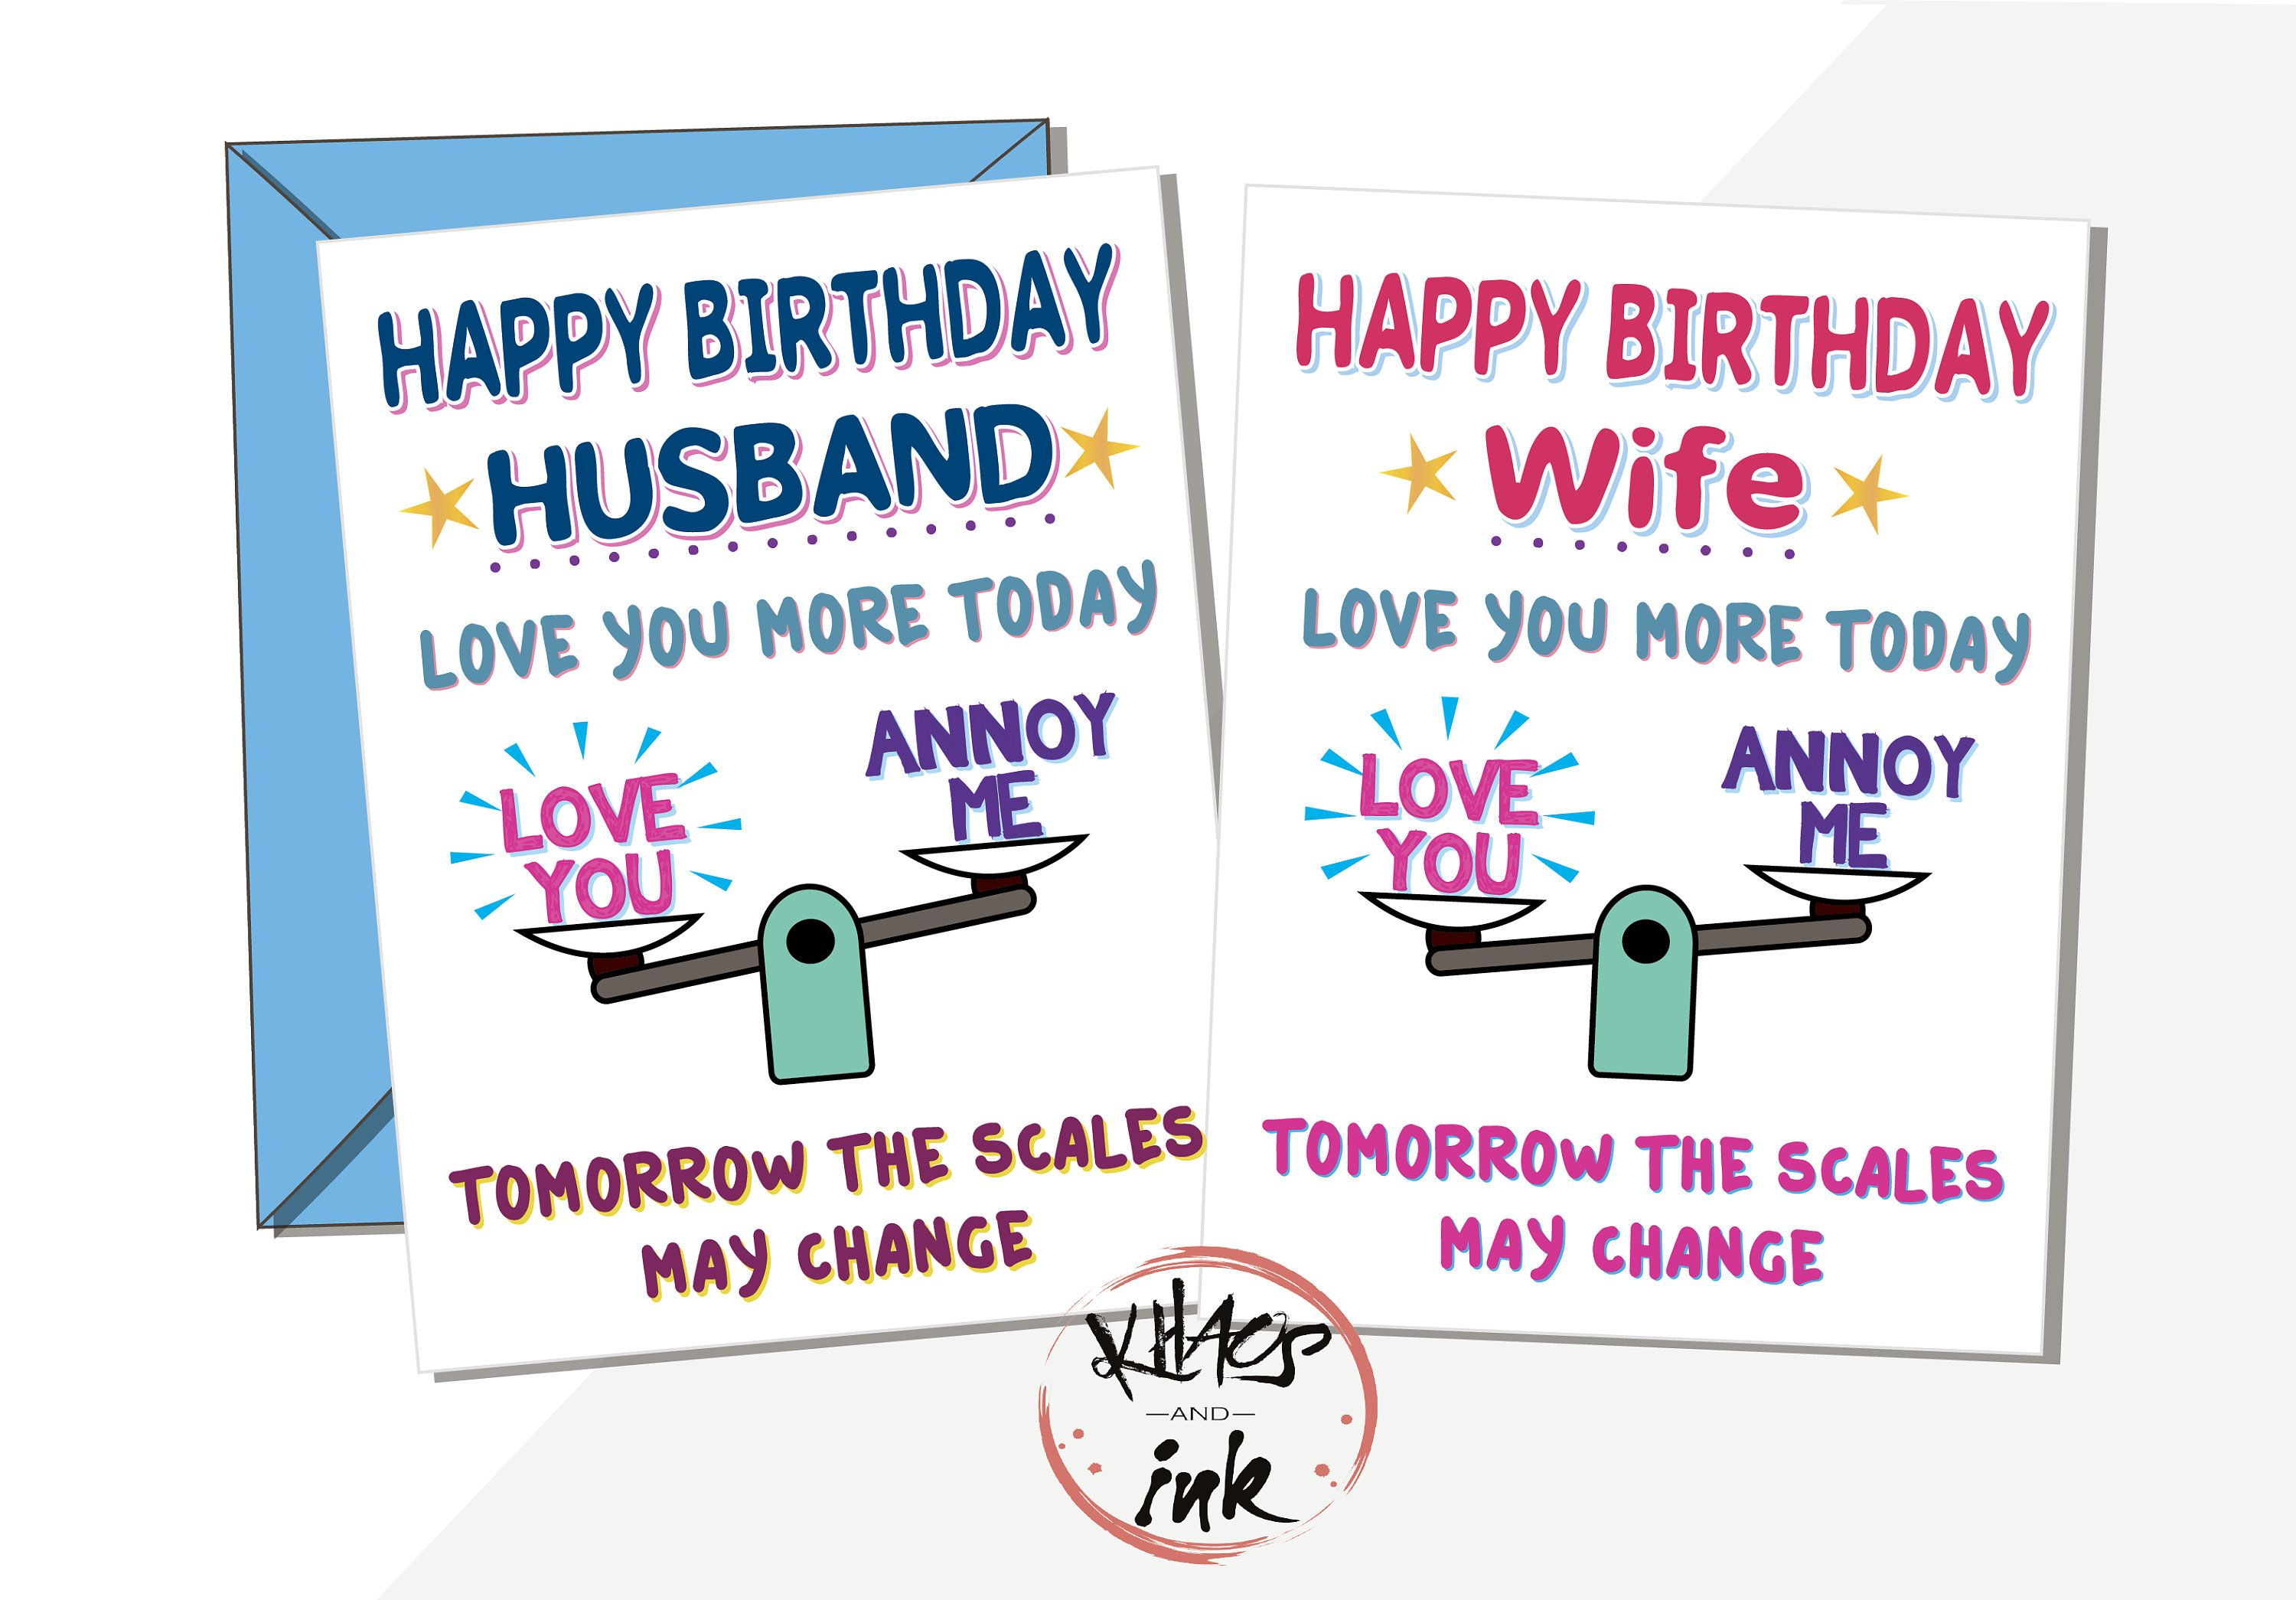 Funny Happy Birthday Card Love You More Today Tomorrow Etsy Happy Birthday Card Funny Happy Birthday Cards Birthday Cards